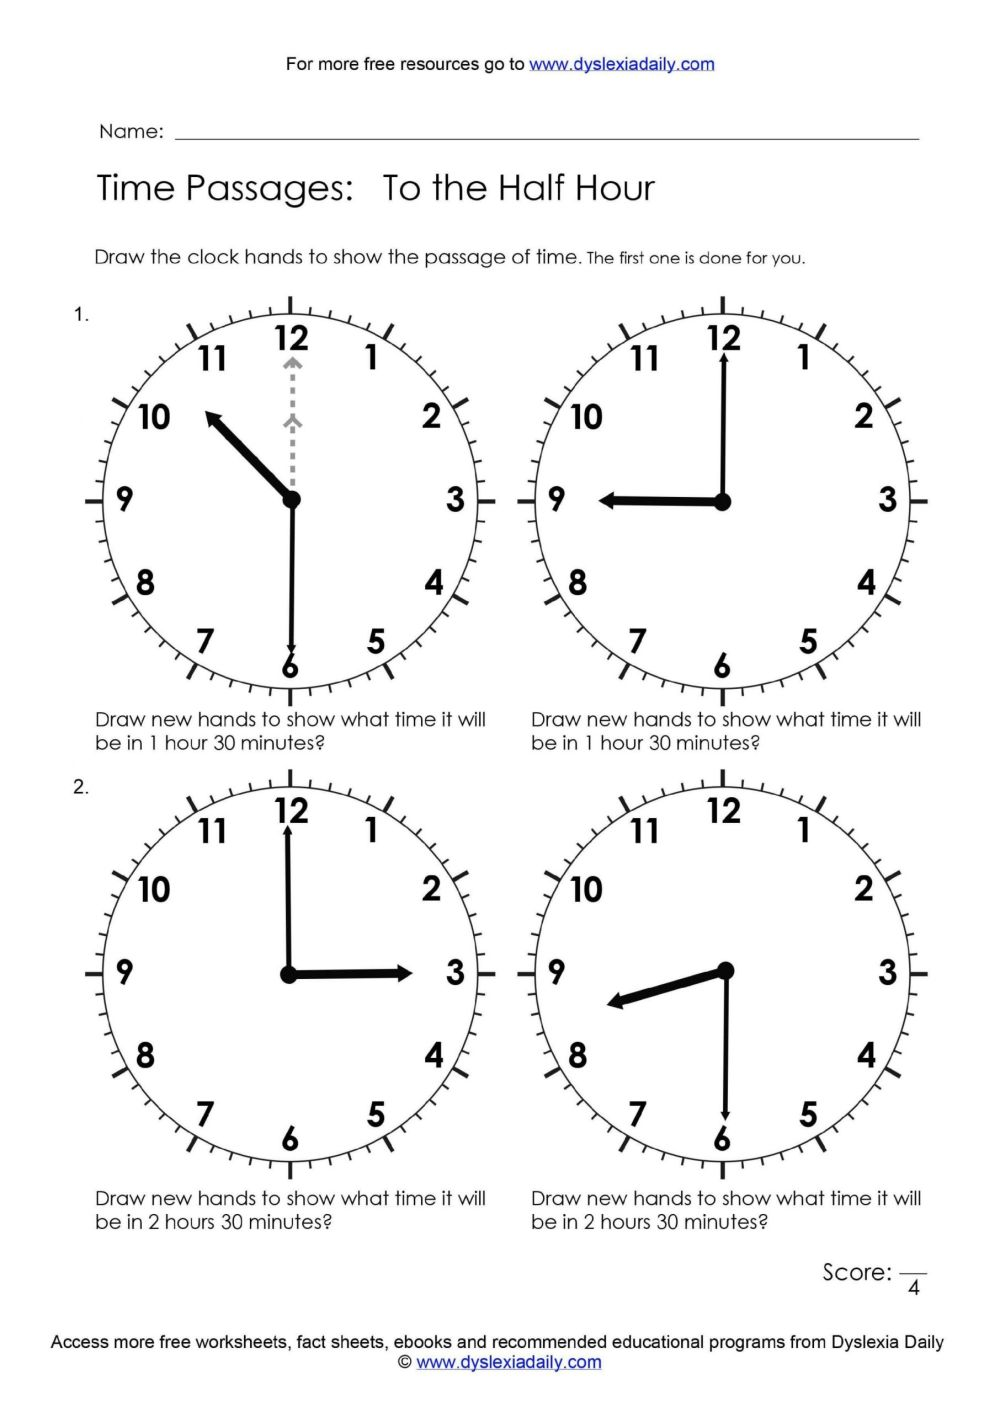 medium resolution of 4 Free Math Worksheets Third Grade 3 Division Long Division with Remainder  within 1 100 - apocalomegaproductions.com